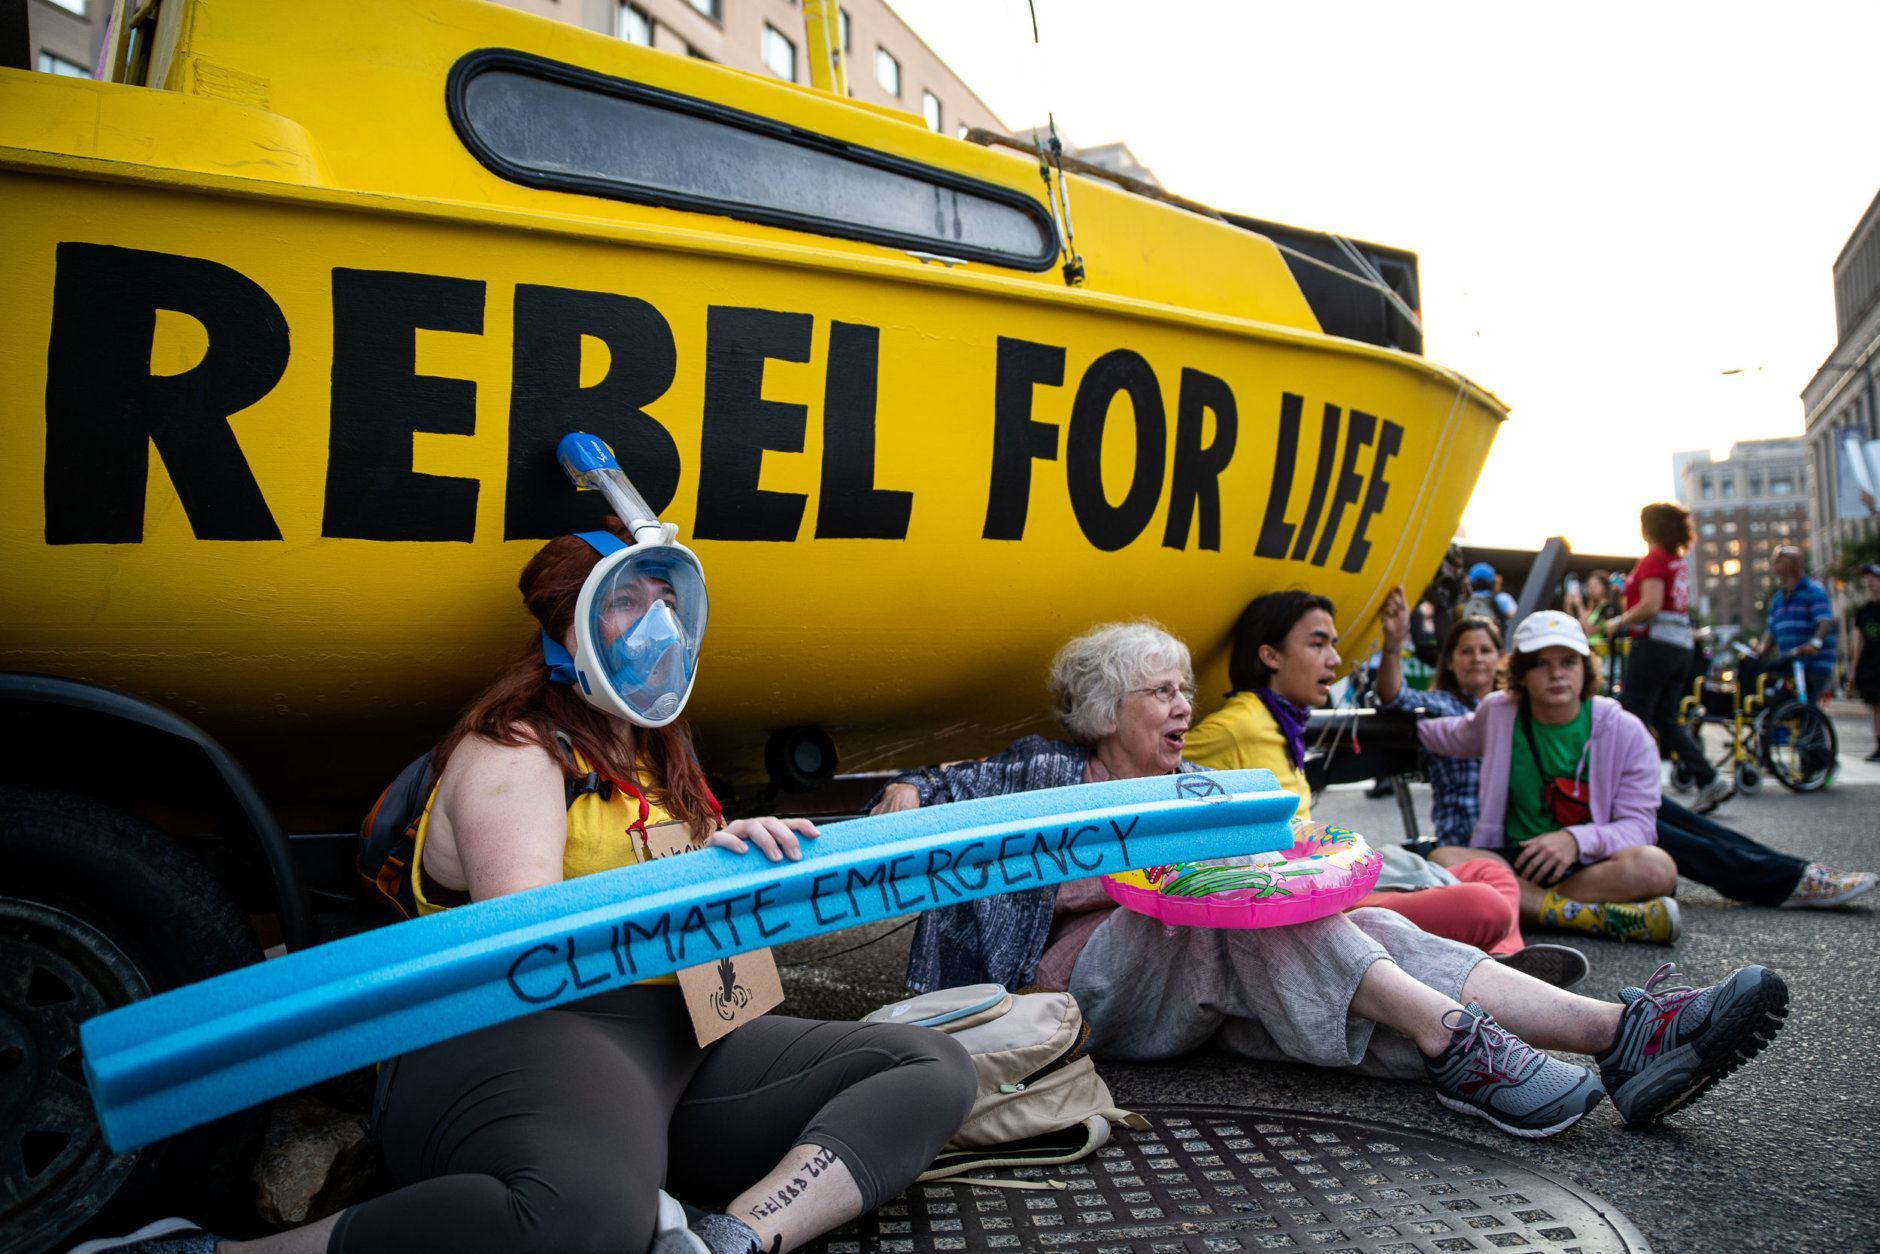 Protesters with Extinction Rebellion stage a sit-in beneath their sailboat blockade at the intersection of K and 16th streets in Washington, D.C. on Sept. 23, 2019. Environmental activists pressured lawmakers to declare a climate change emergency by paralyzing morning traffic in the nation's capital. (WTOP/Alejandro Alvarez)